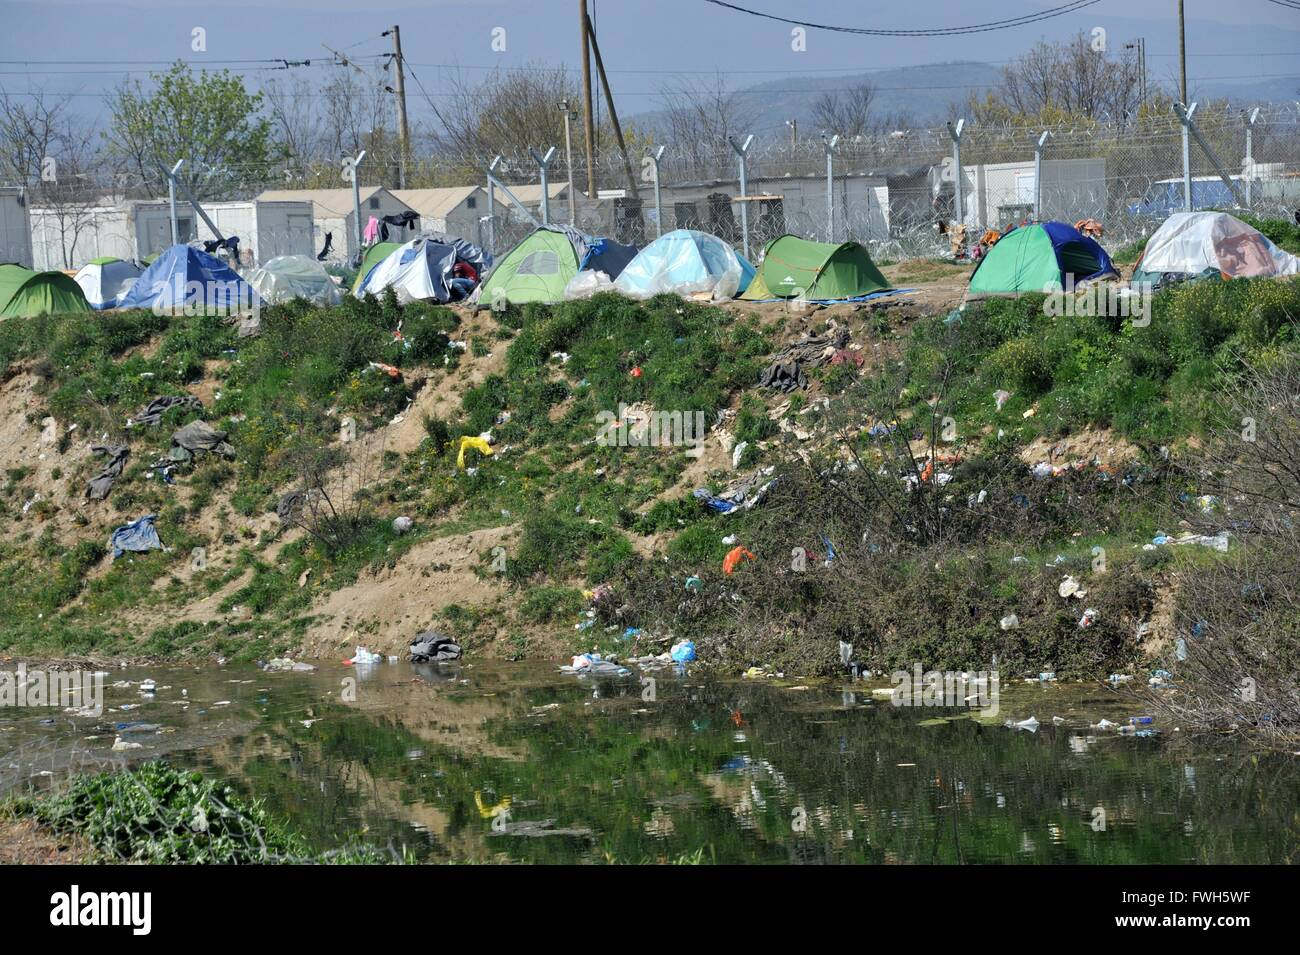 Tents on the other side of the river, up right on the border fence . Much garbage lying around - 29 March 2016 - Stock Image